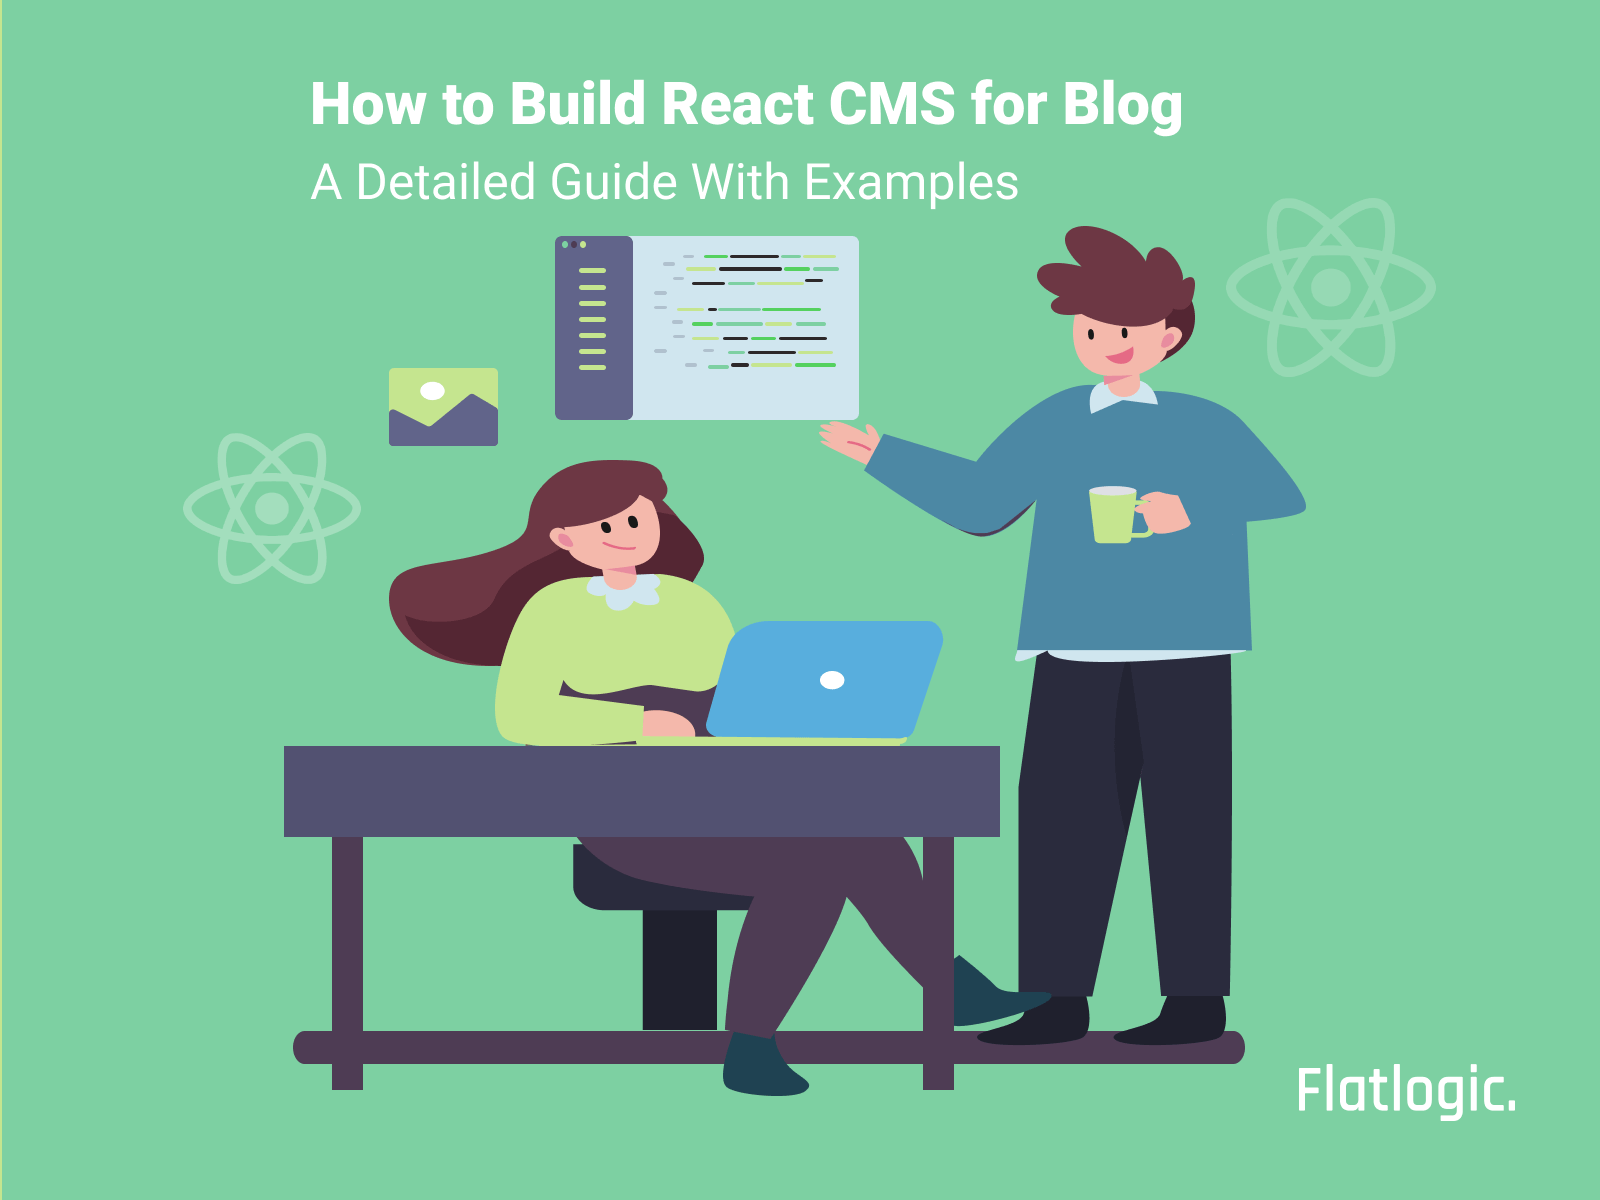 How to Build React CMS for Blog [Step-by-Step Guide]